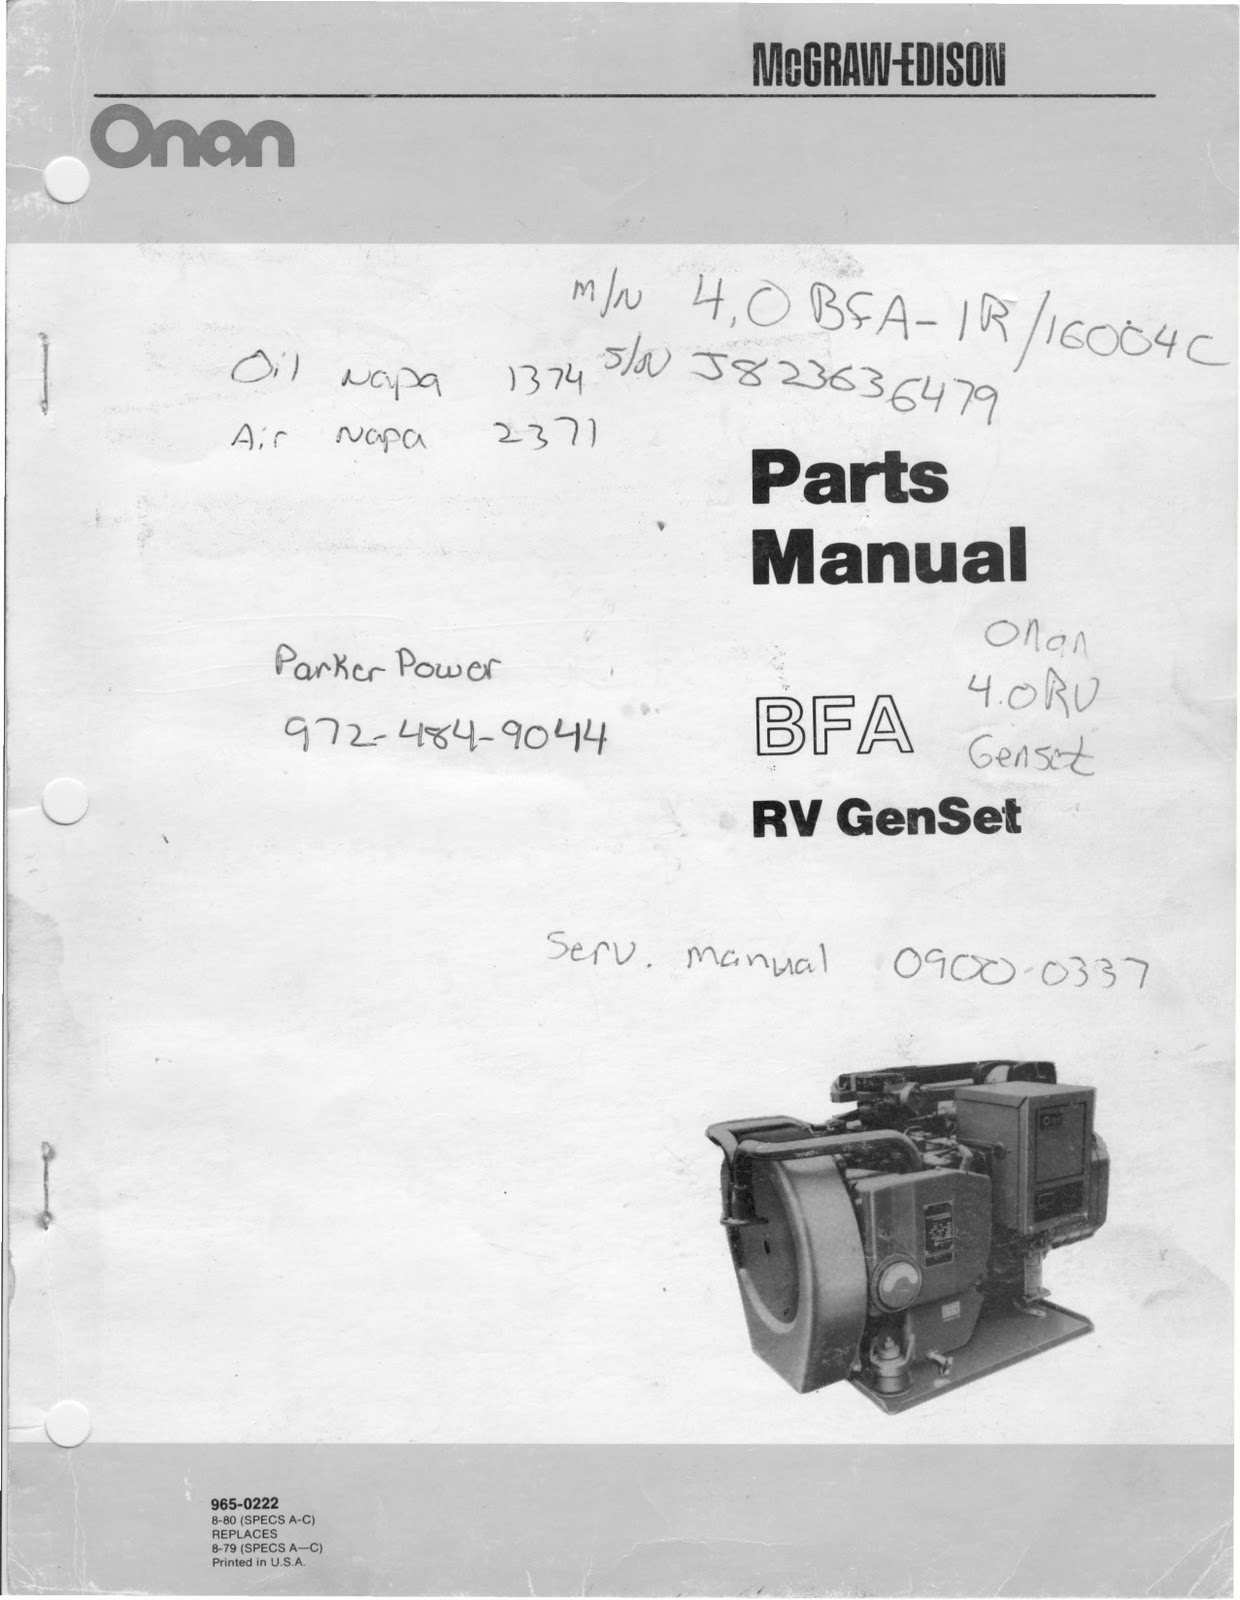 1983 fleetwood pace arrow owners manuals onan bfa rv genset parts onan bfa rv genset parts manual asfbconference2016 Choice Image